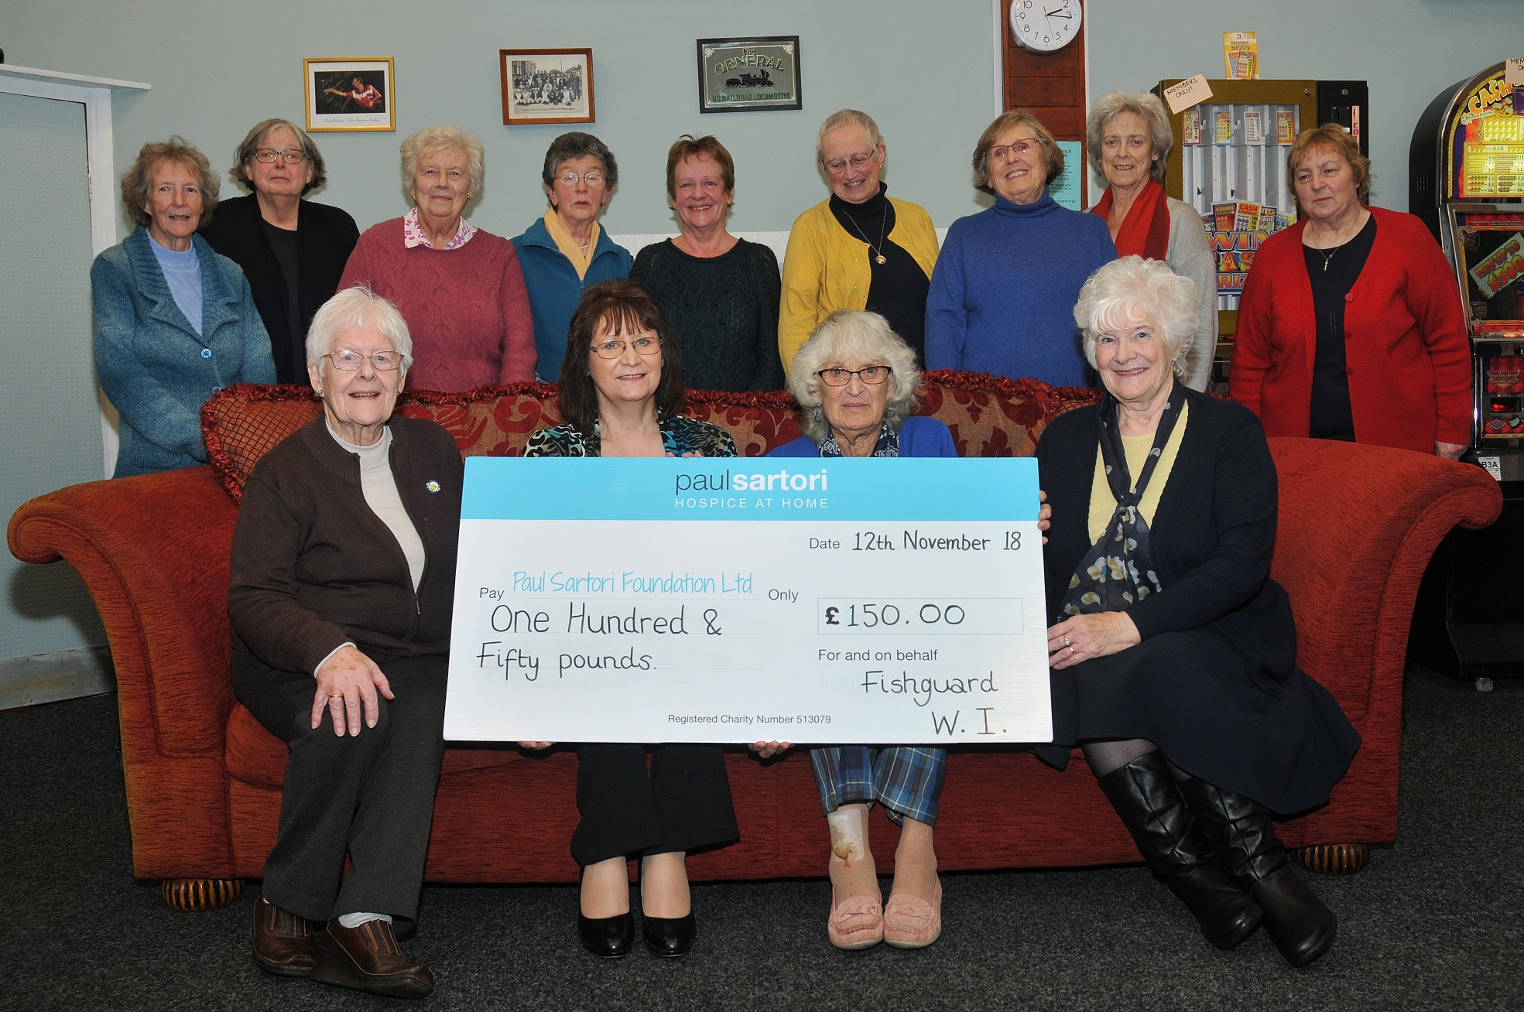 Members of Fishguard WI presenting Rosalind Raymond with the cheque.